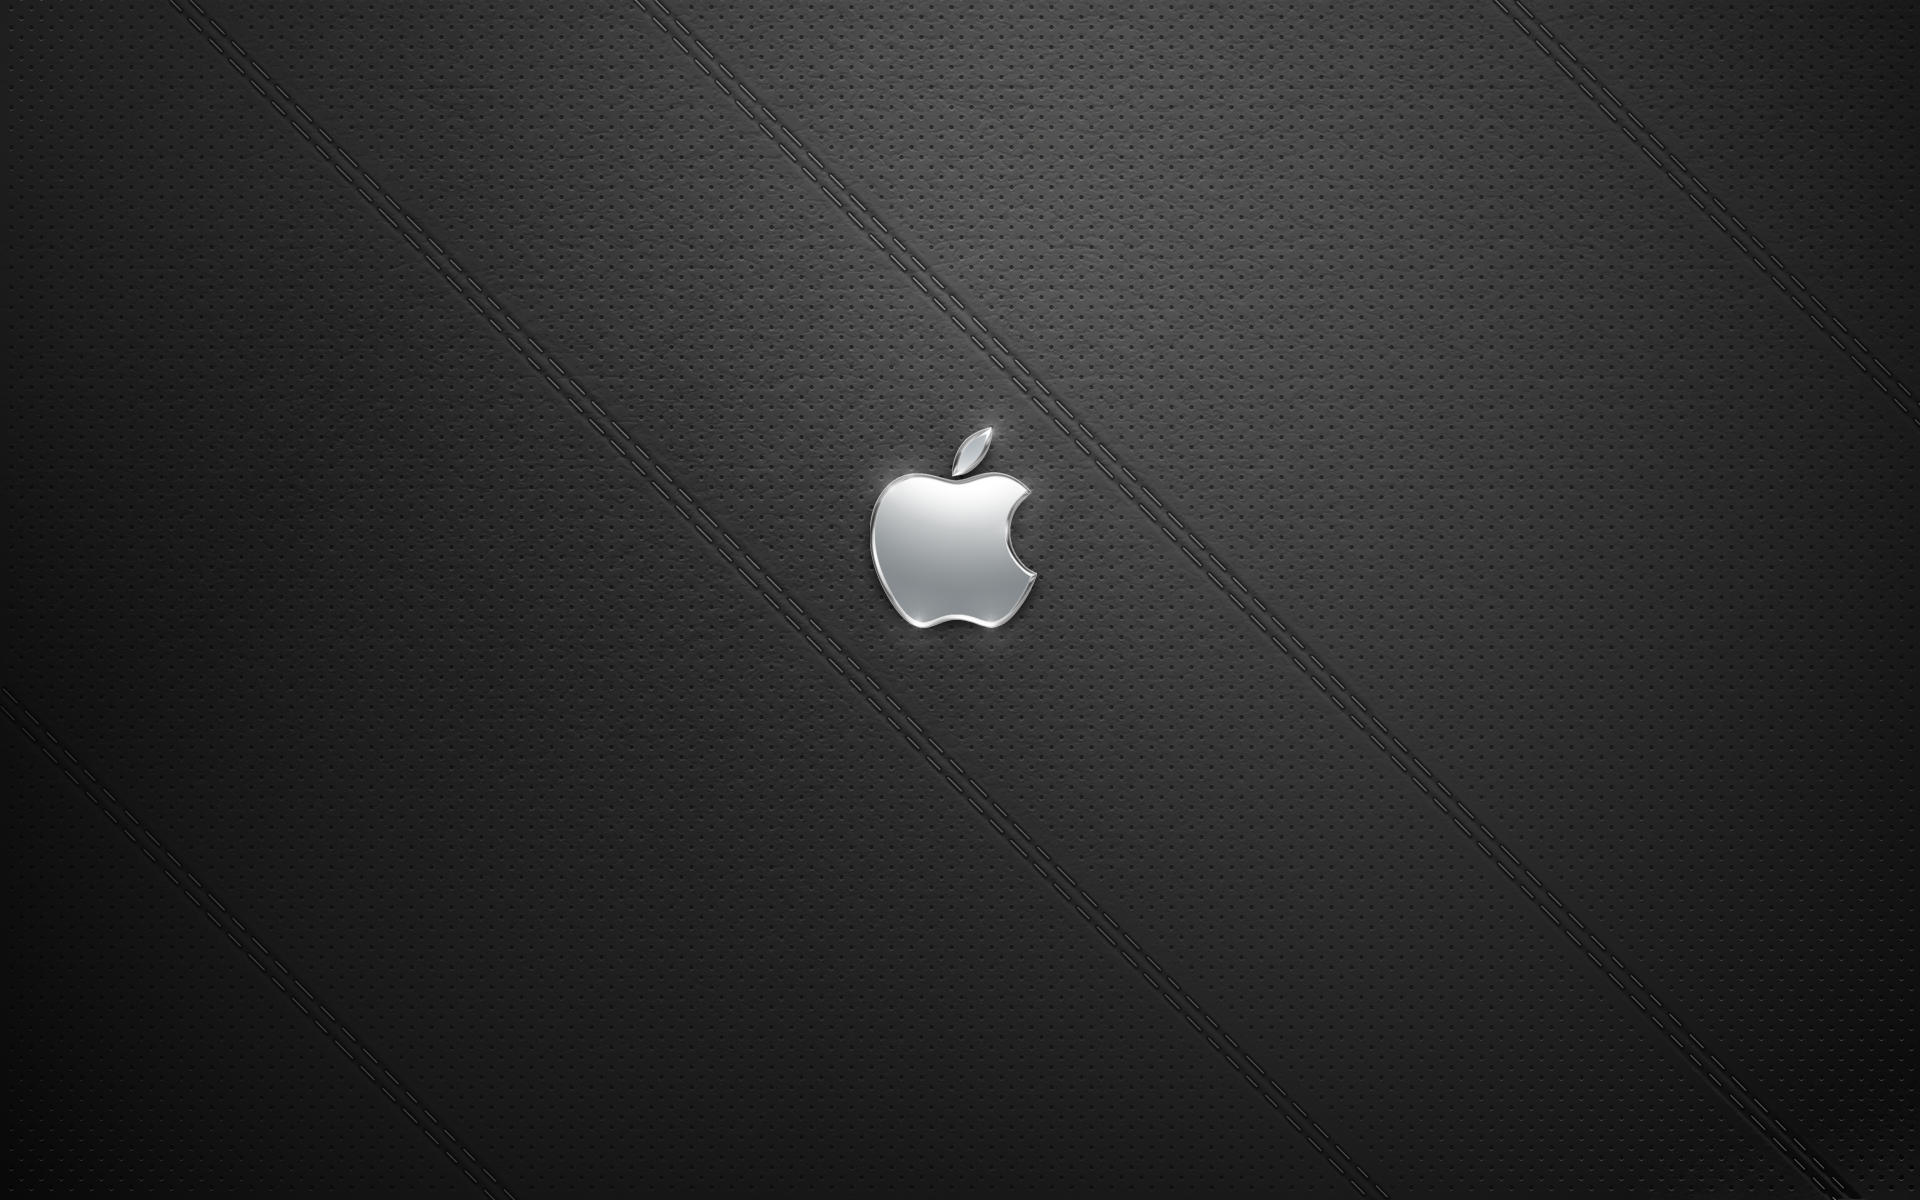 The Art of Adam Betts » Black Leather Apple Desktop Background